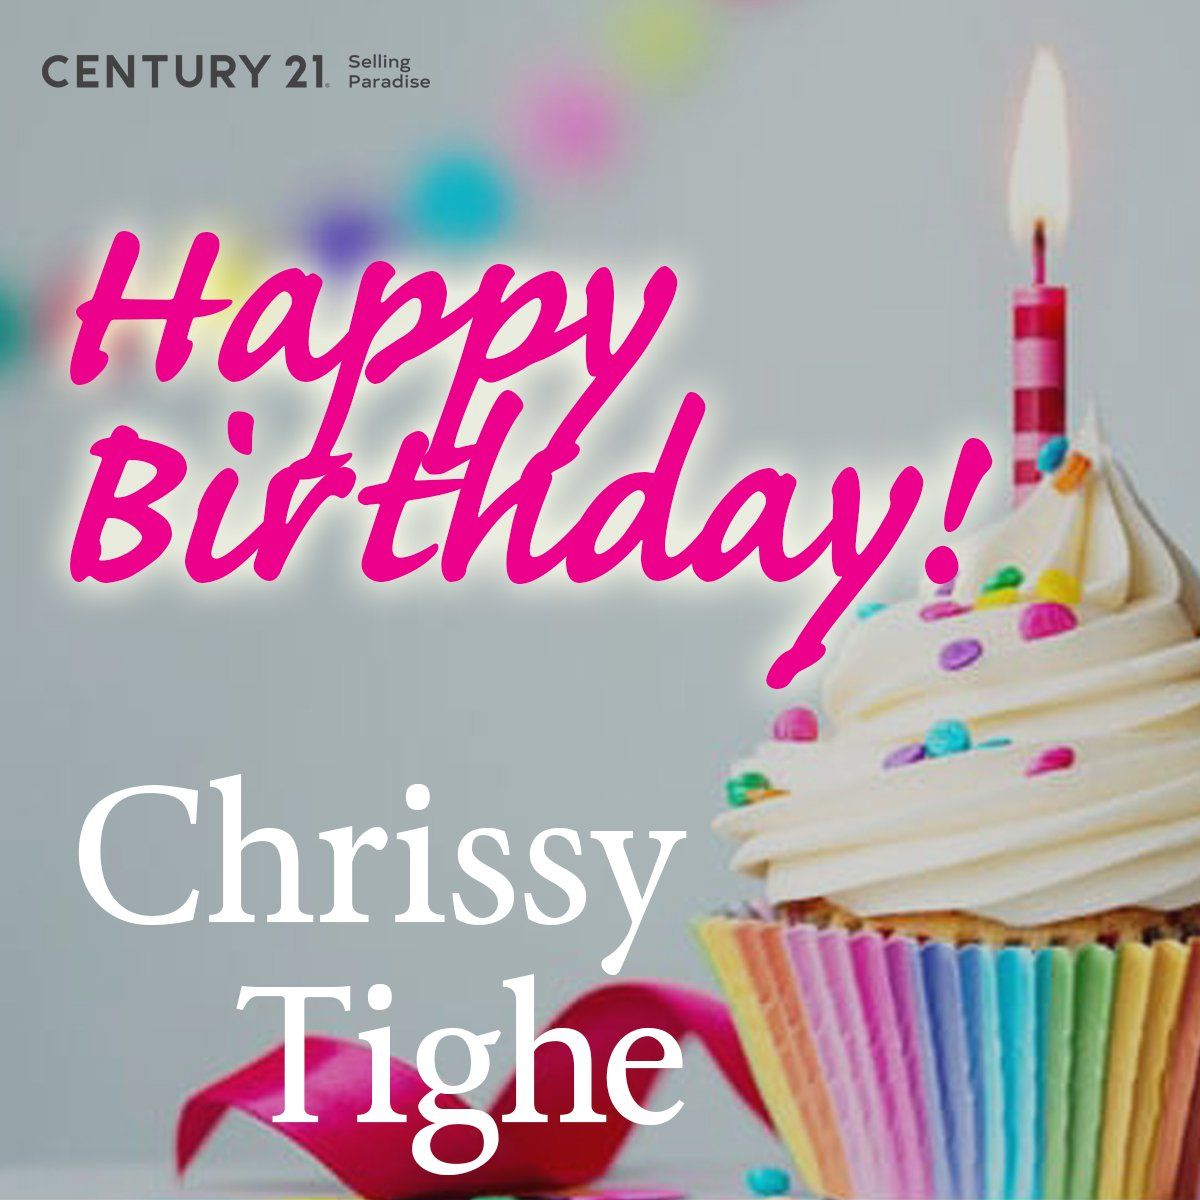 Wishing a lovely birthday to Chrissy Tighe/Realtor at Century 21 Selling P... with #C21SP Cape Coral, from your #C21SPFam!  #HBD #HappyBirthday #C21 #Realtor #SWFL #FL #RealEstate